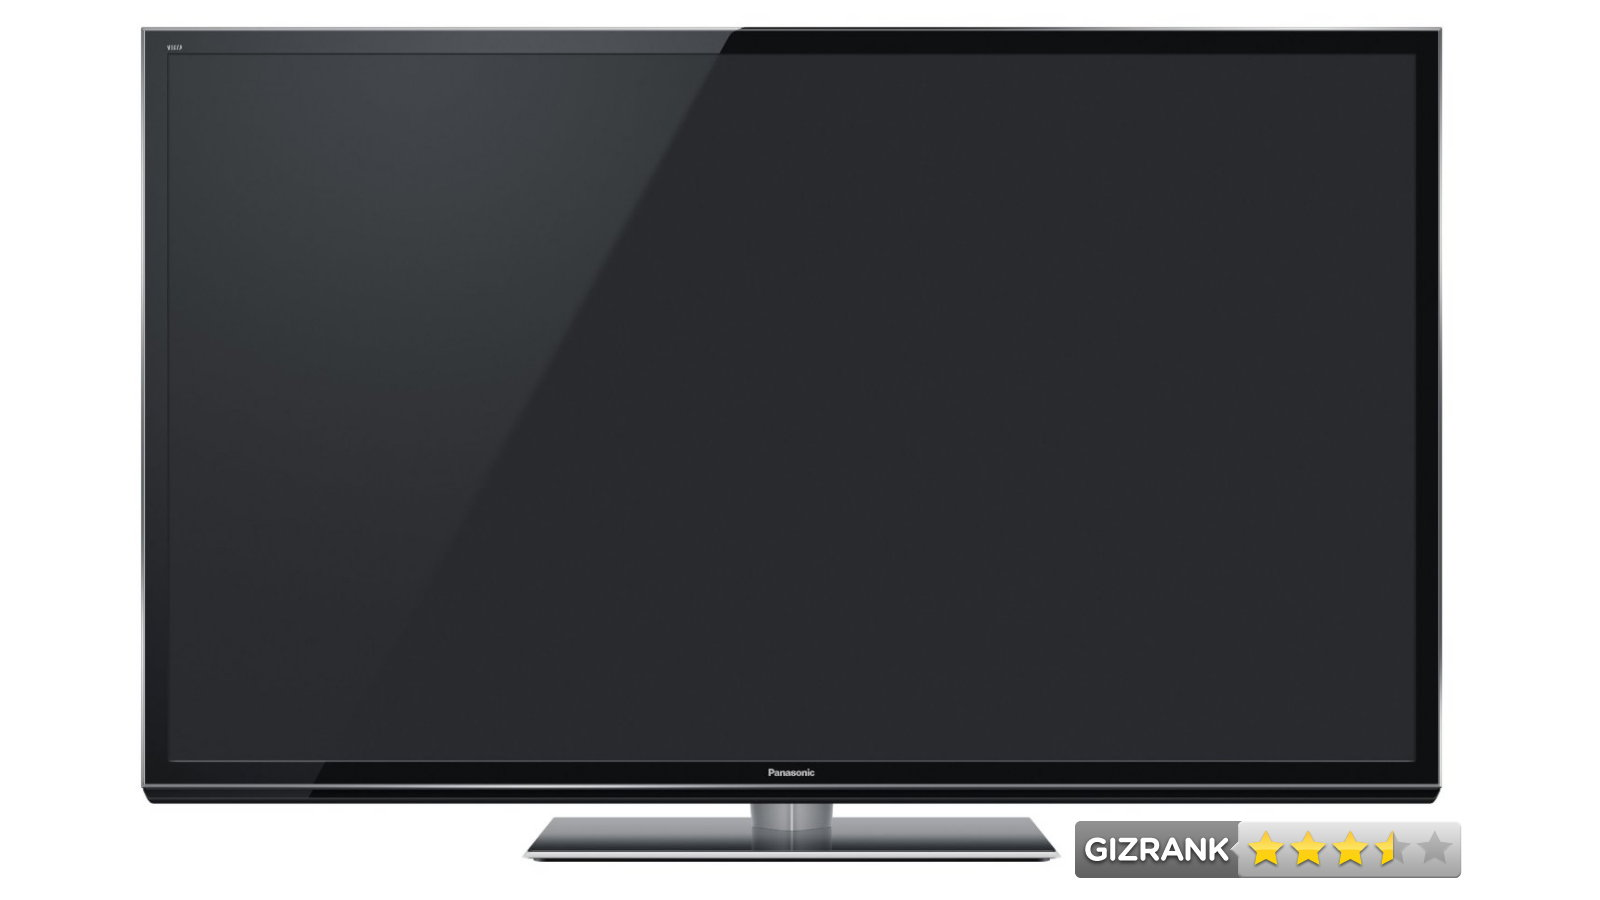 Click here to read Panasonic ST50 Plasma Television Review: Good Picture, Great Value